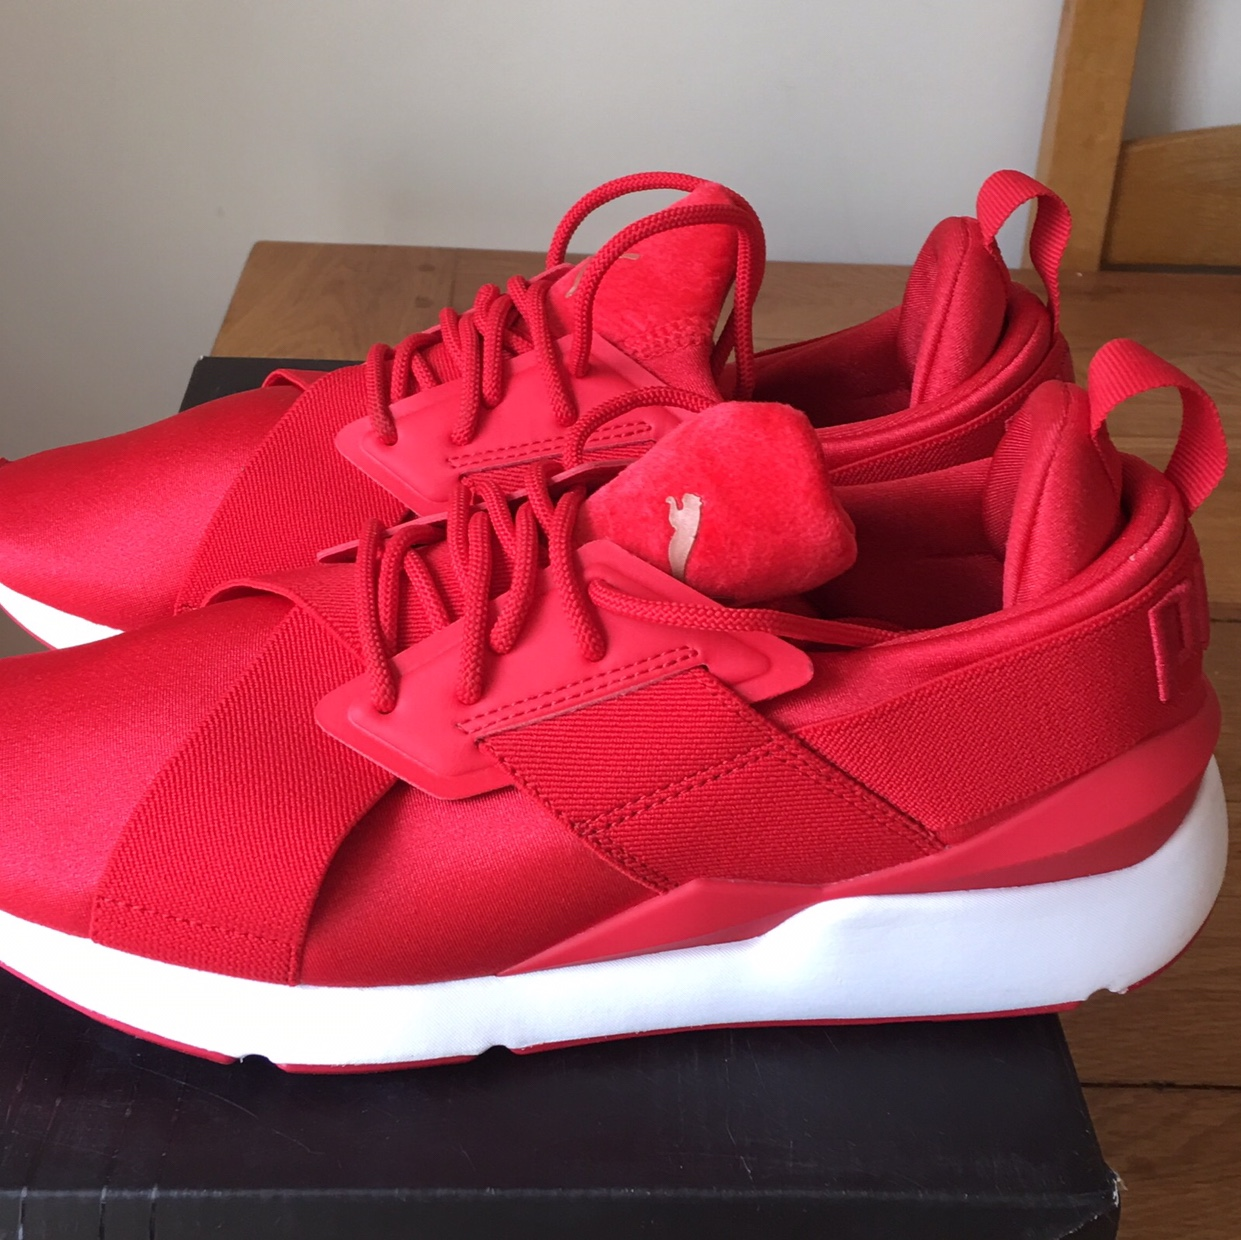 Puma Muse Satin Ignite Trainers Red UK 7 New Was £77... - Depop